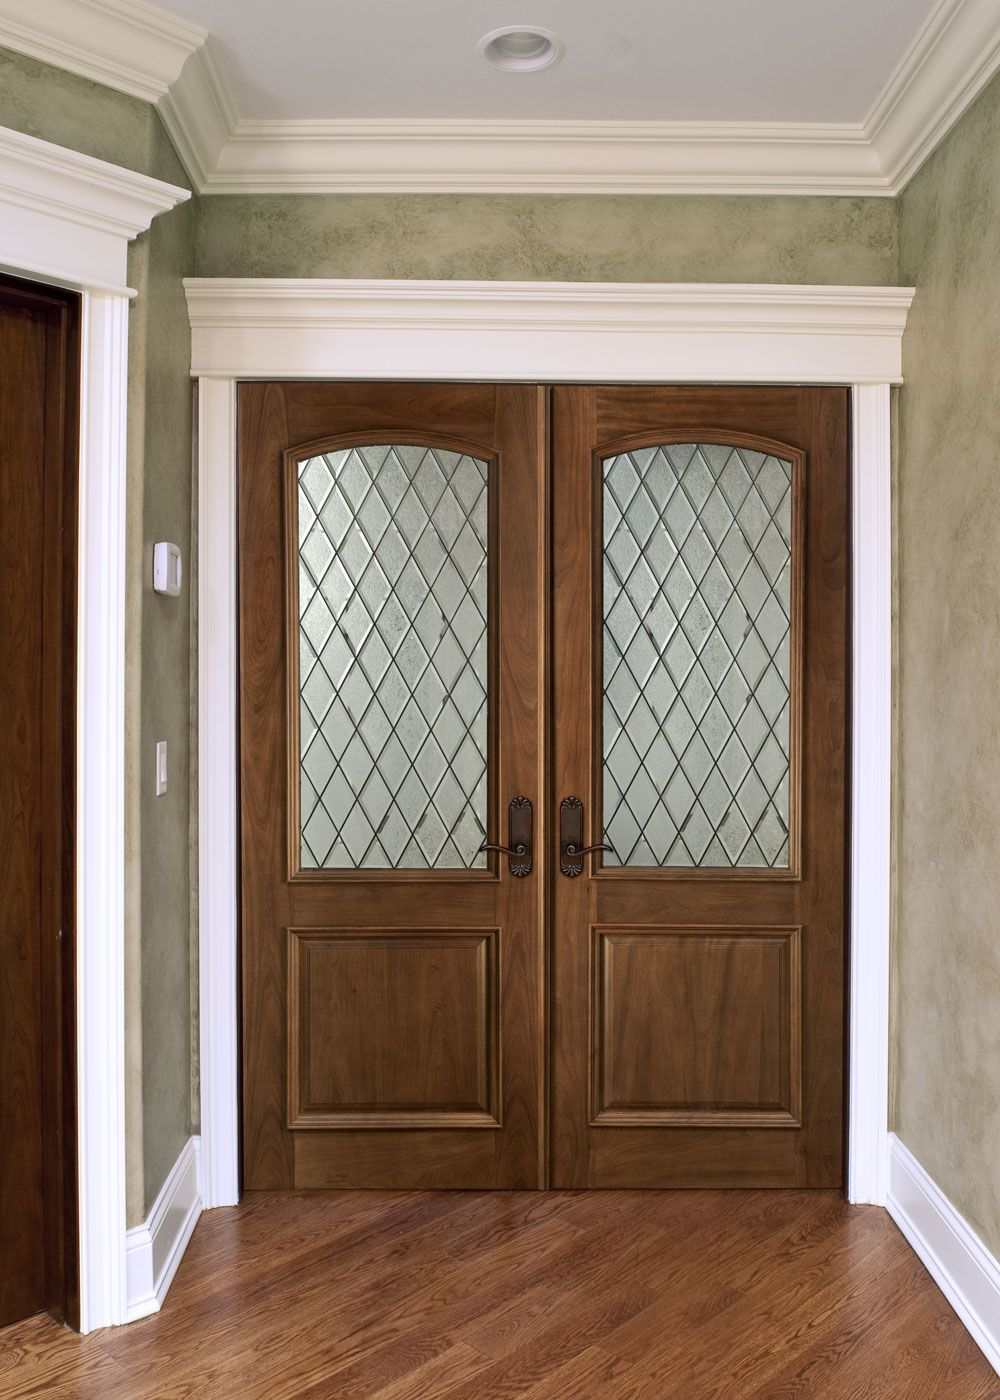 Superieur Image Result For Double Interior Glass Doors